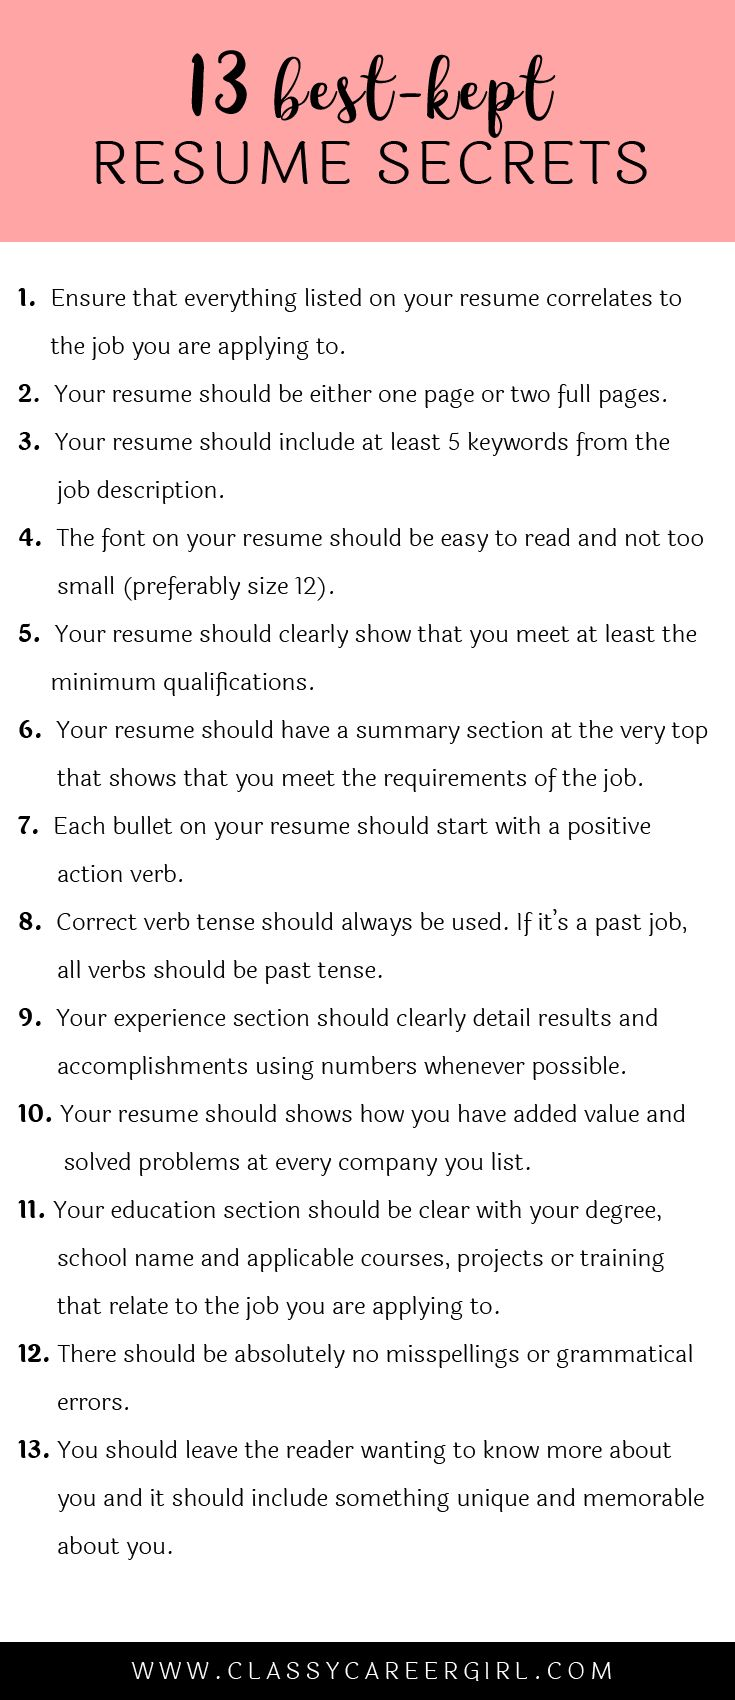 25 unique resume tips ideas on pinterest resume resume ideas